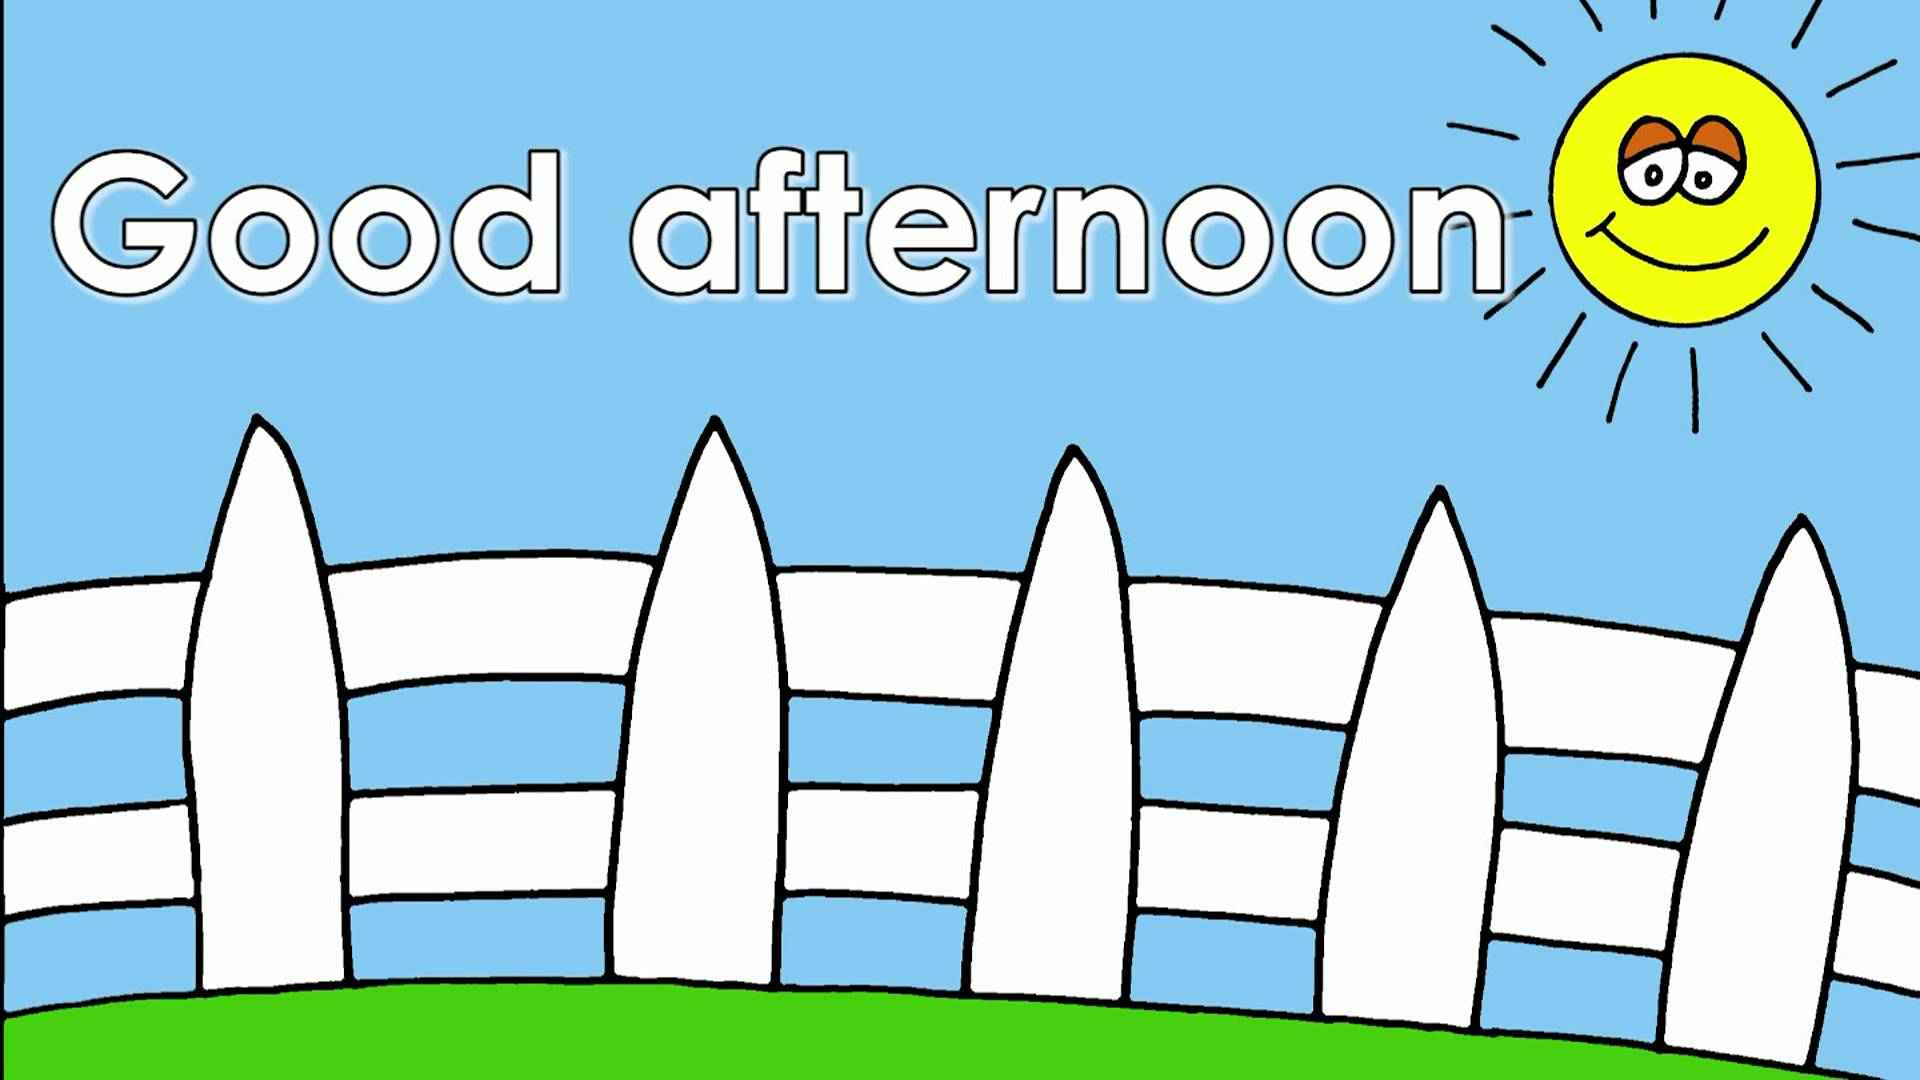 Good morning good afternoon good evening clipart banner black and white stock Good evening hd clipart - ClipartFox banner black and white stock